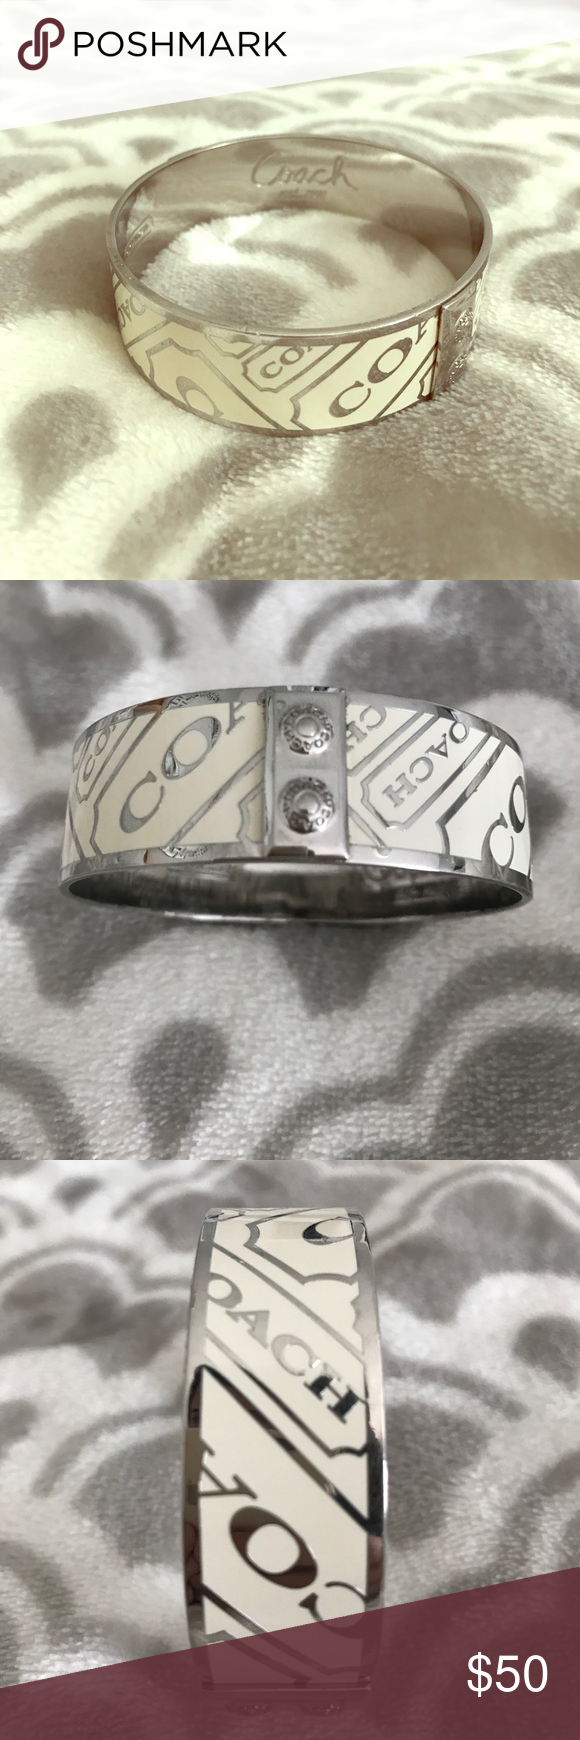 Coach bangle bracelet Enamel and sterling off-white bangle bracelet ! Cute and in great condition. 100% authentic. Slip on. Coach Jewelry Bracelets